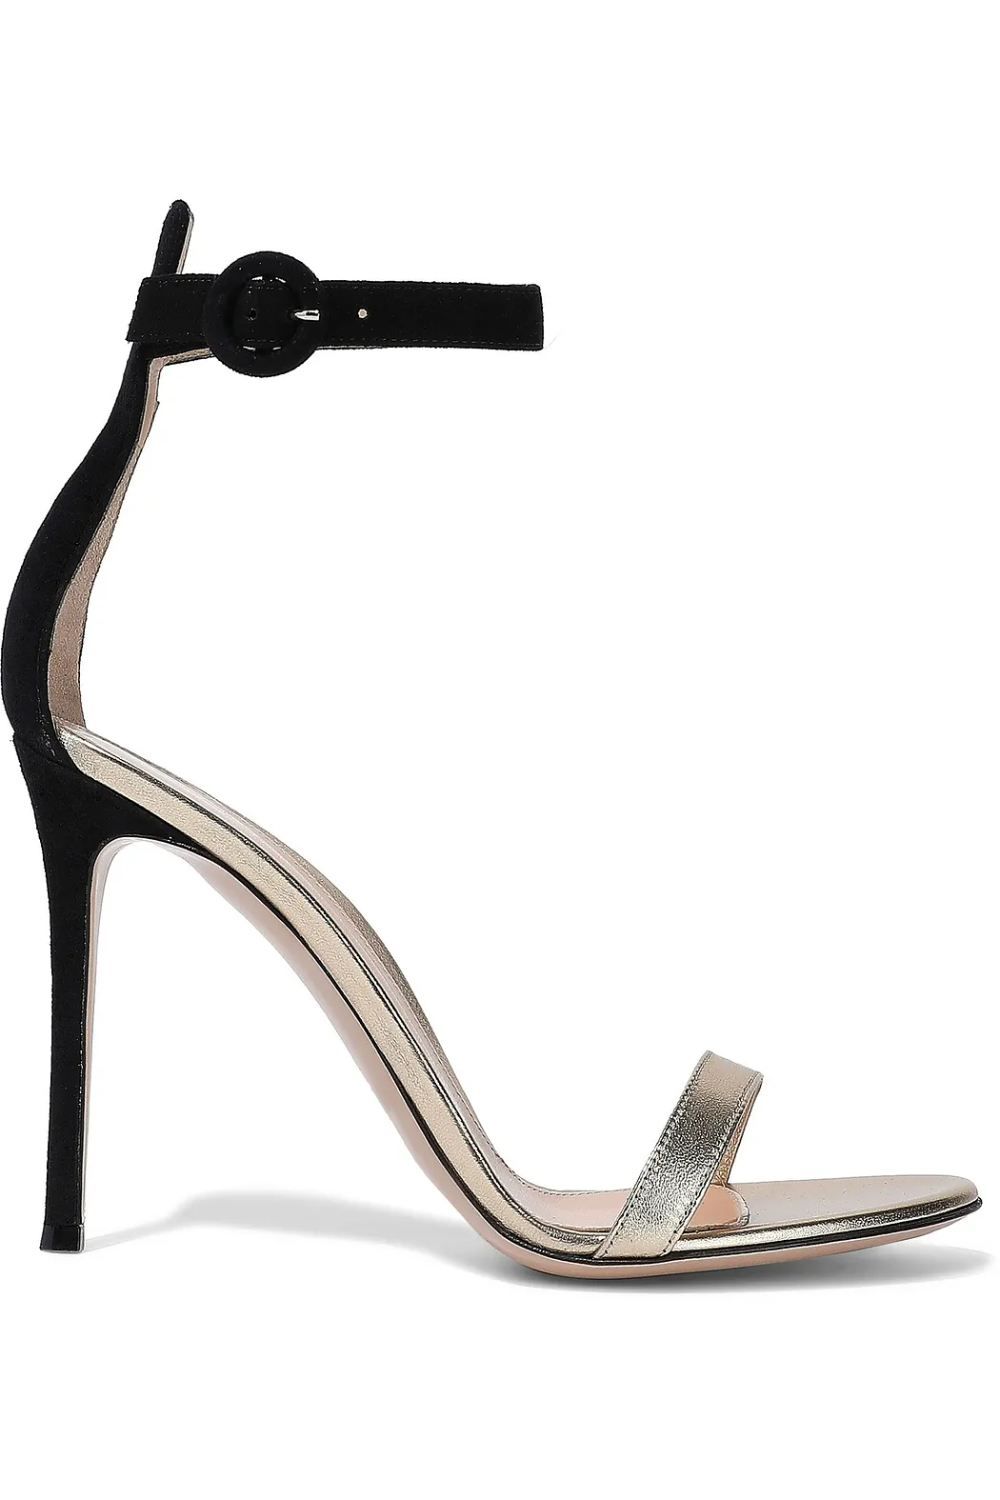 Gold Portofino 105 Suede And Metallic Leather Sandals Sale Up To 70 Off The Outnet Gianvito Rossi In 2020 Metallic Leather Sandals Sandals For Sale Sandals Heels